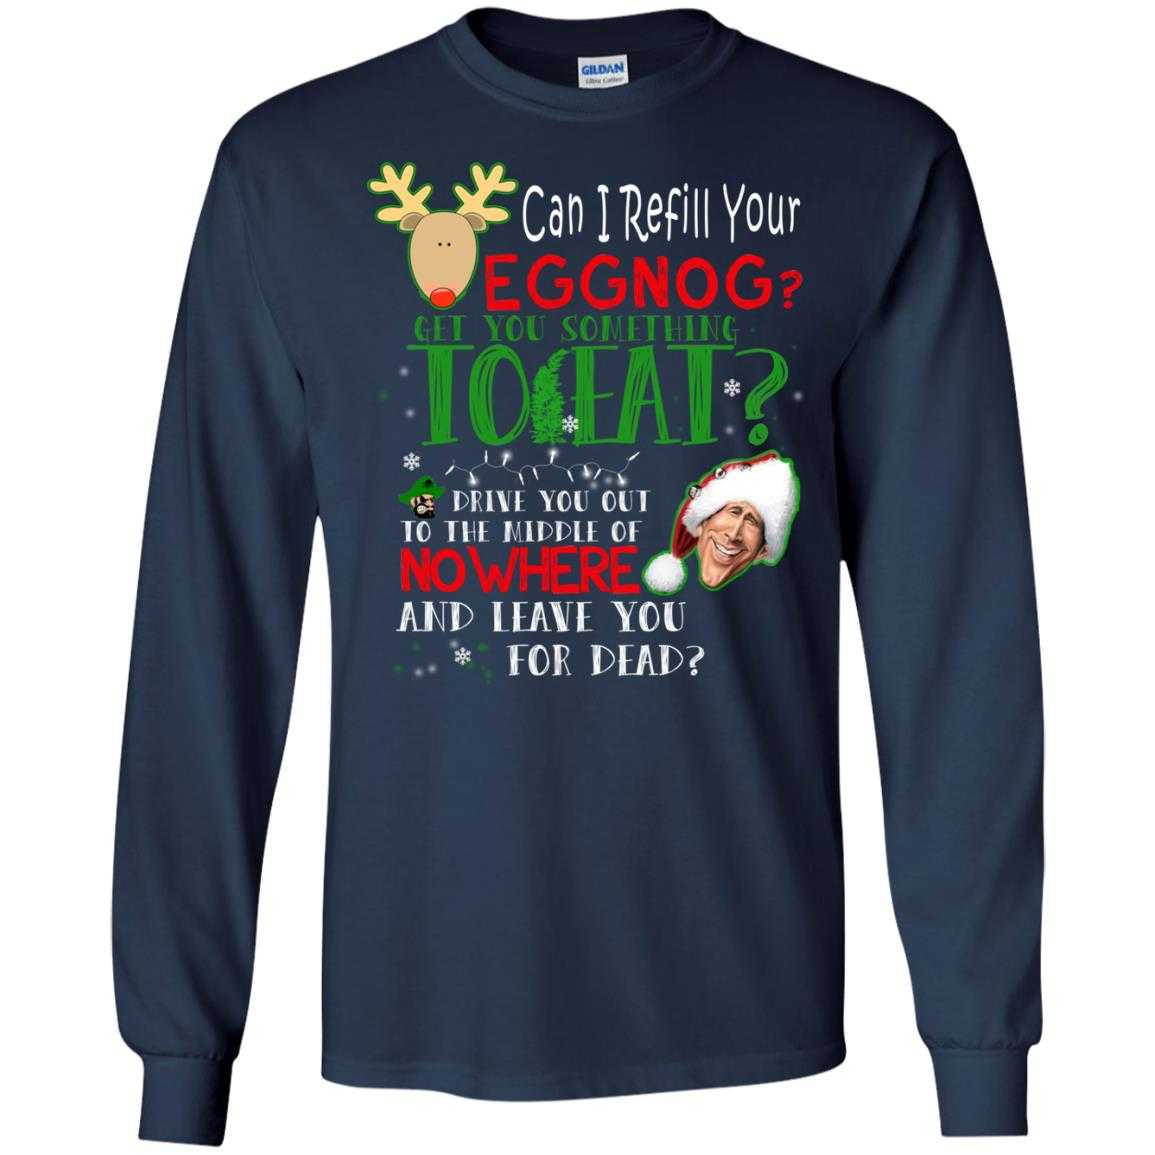 Christmas Vacation Quotes Leave You For Dead: Can I Refill Your Eggnog Get You Something To Eat Sweater